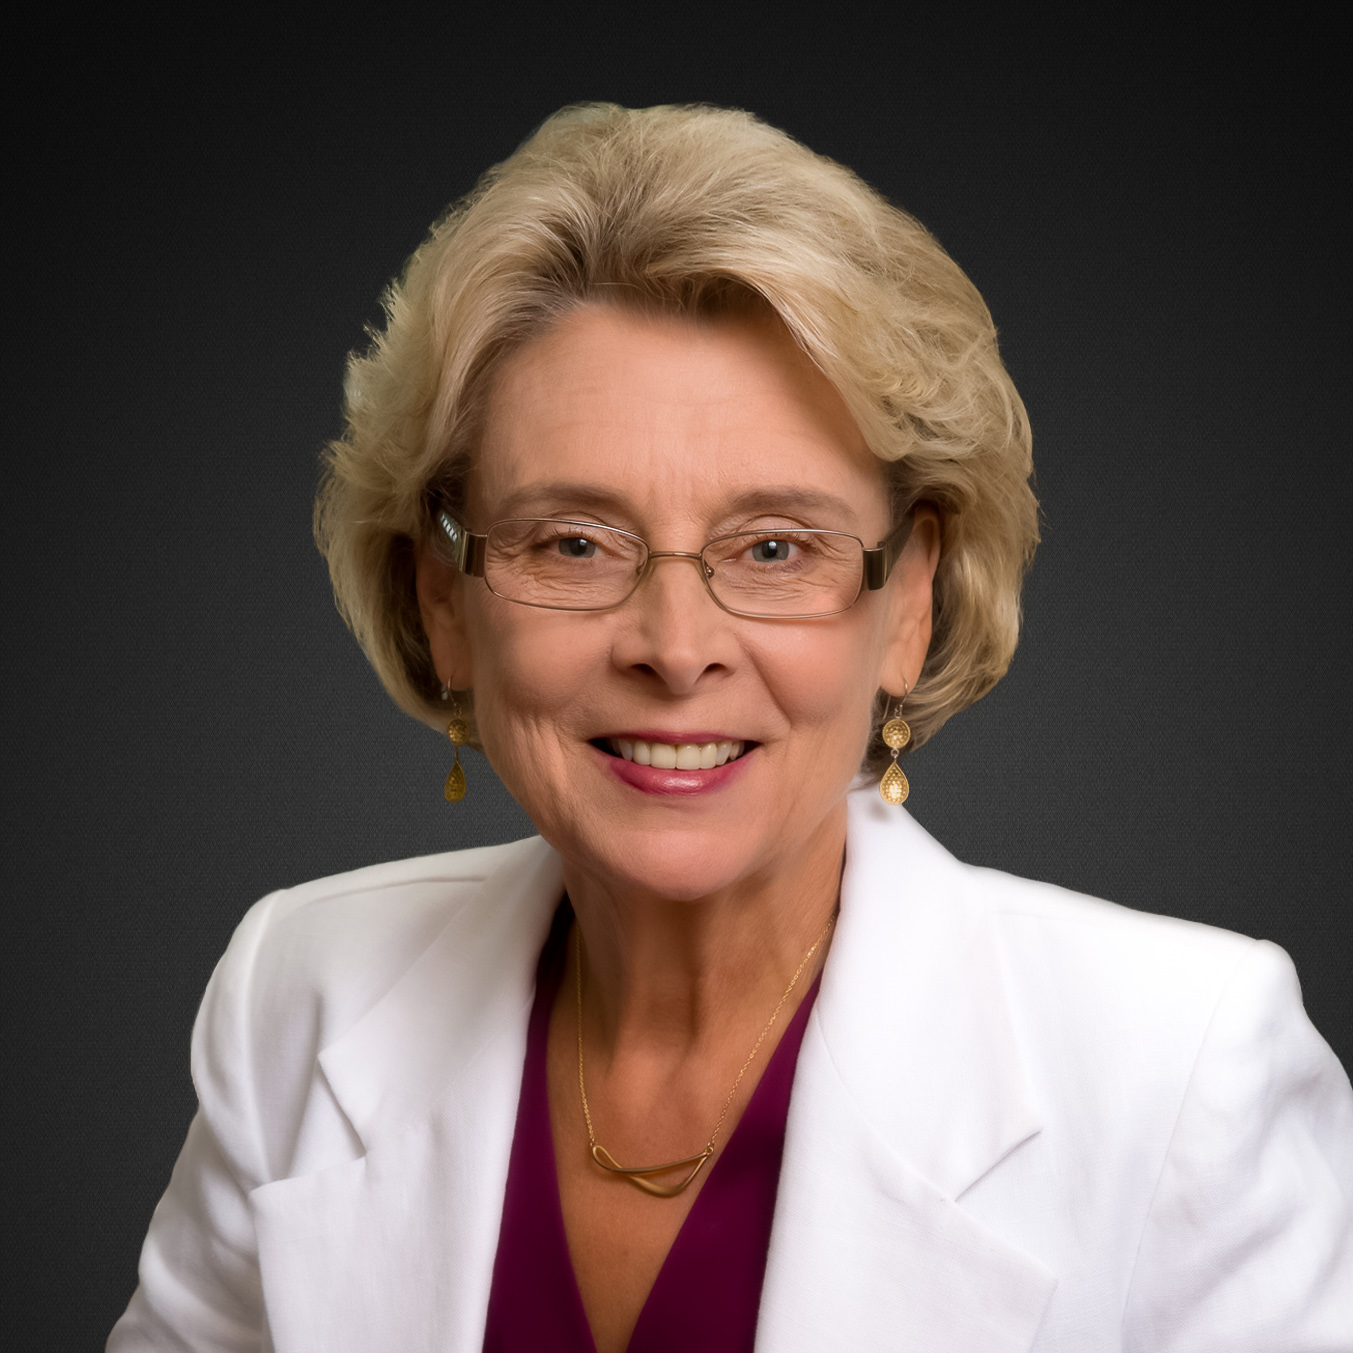 The Hon. Christine Gregoire BOARD OF GOVERNORs